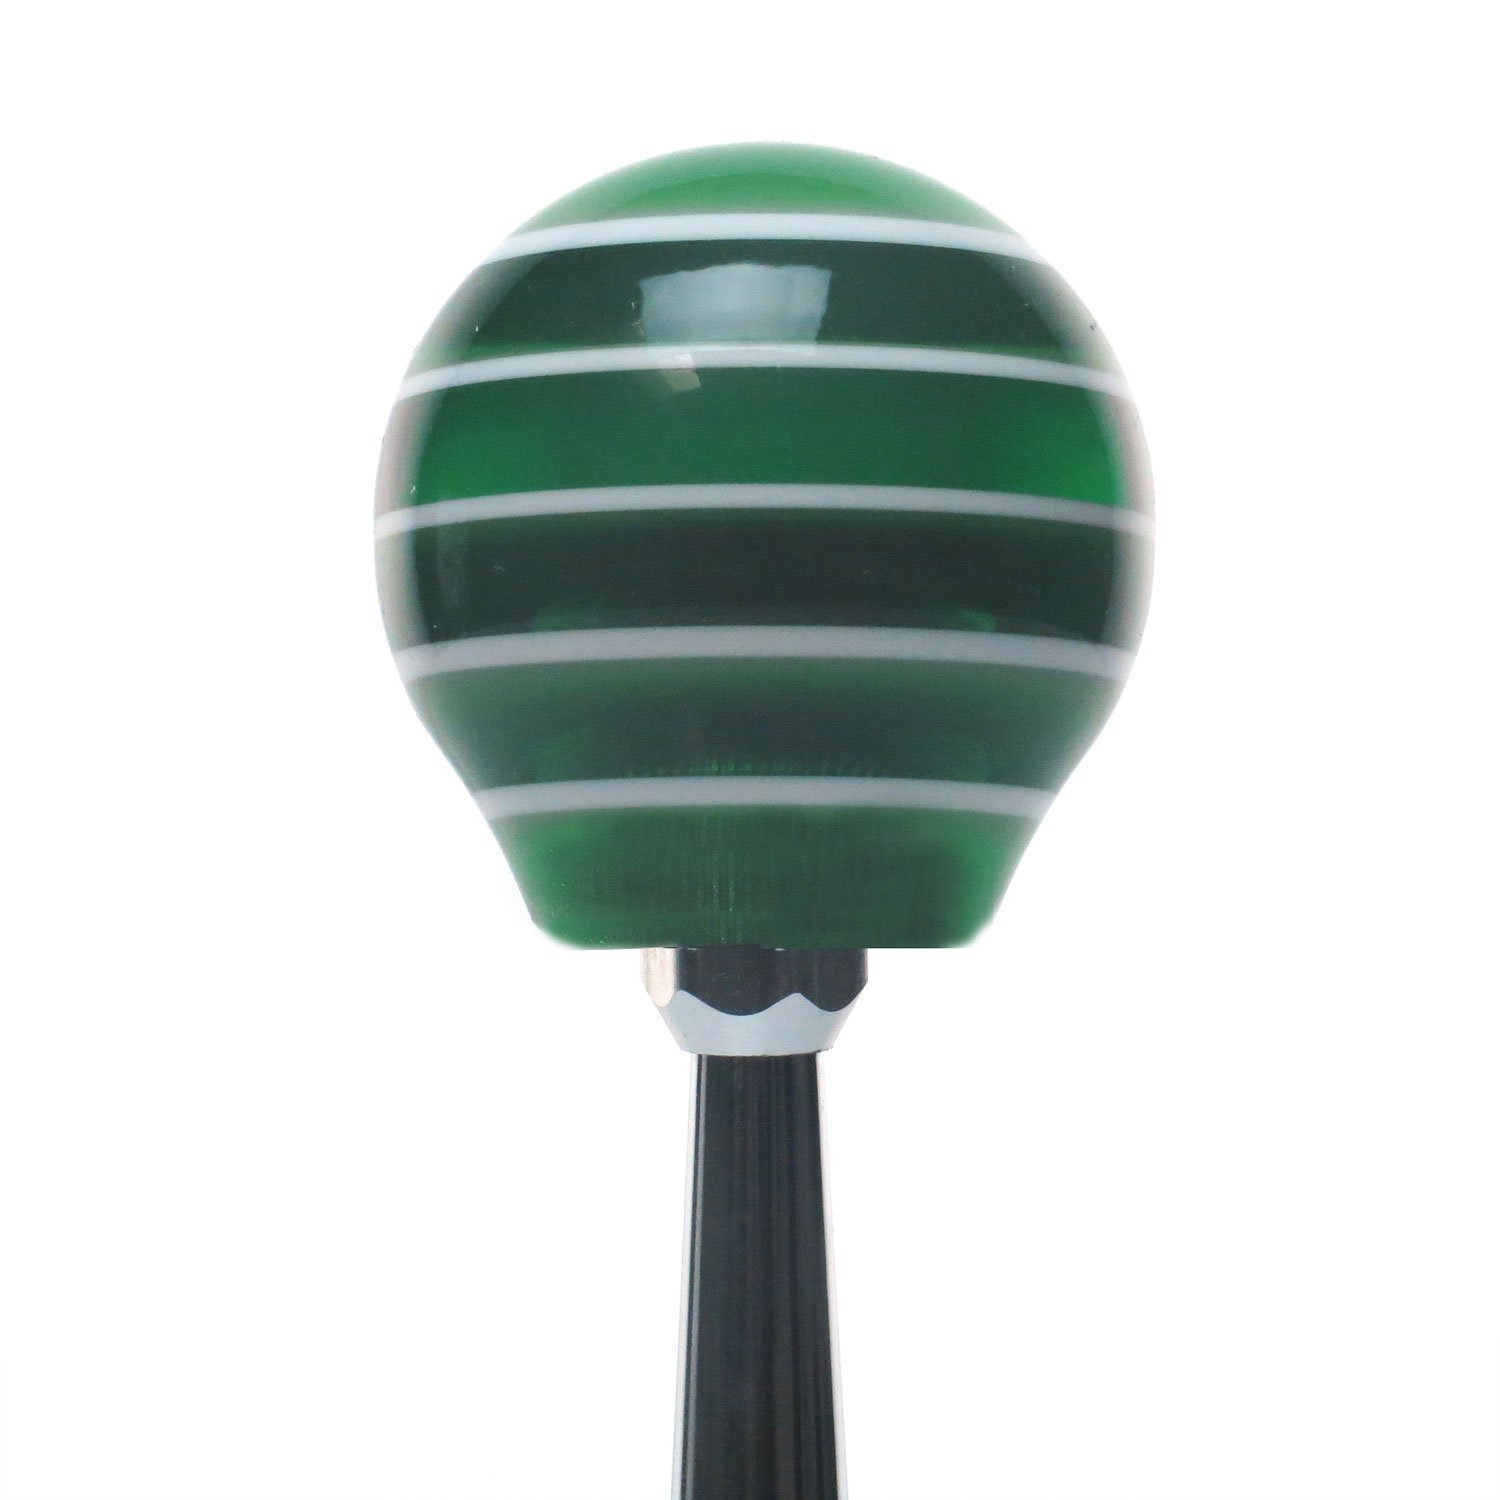 Green 5 Speed Shift Pattern - Dots 15 Green Stripe with M16 x 1.5 Insert American Shifter 275516 Shift Knob